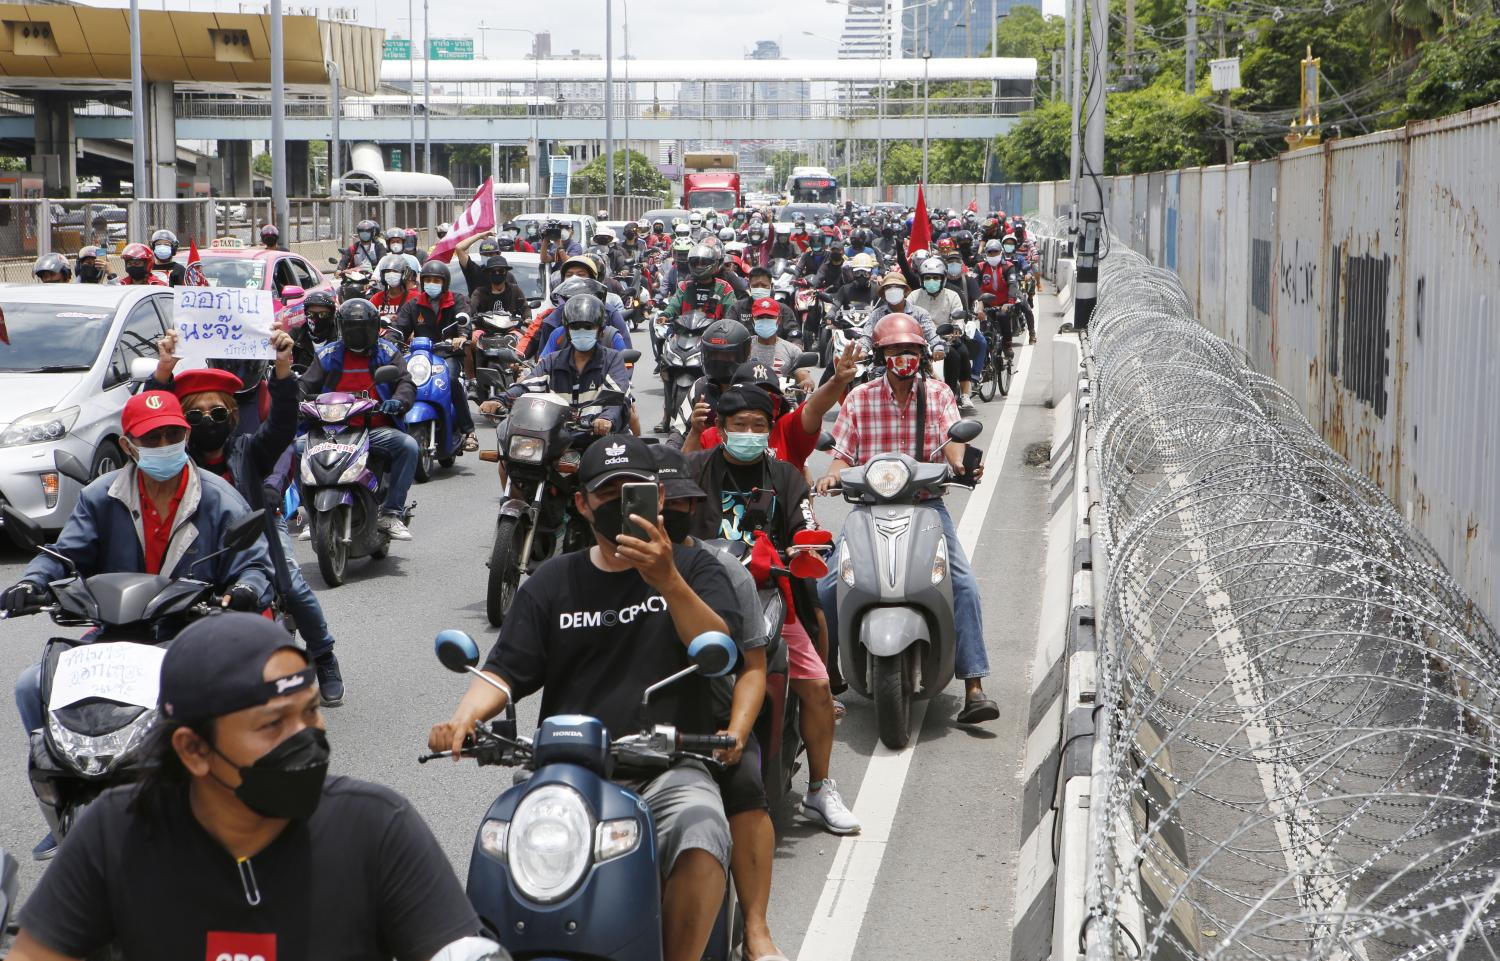 Police to act if anti-govt ralliers keep defying orders